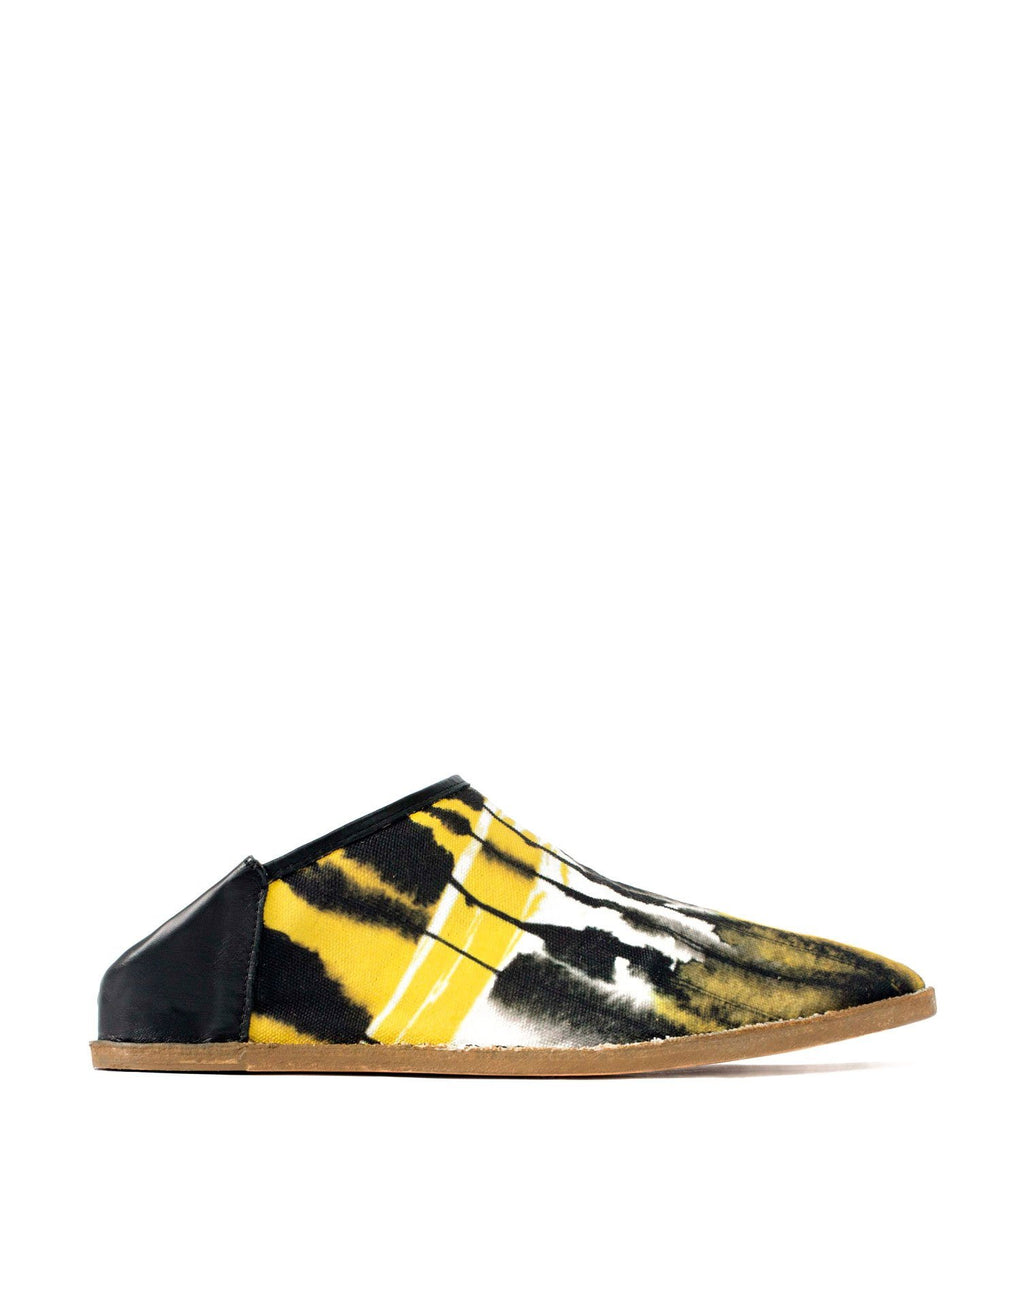 Unique printed canvas summer slip on slipper shoe by designer Georgina Goodman